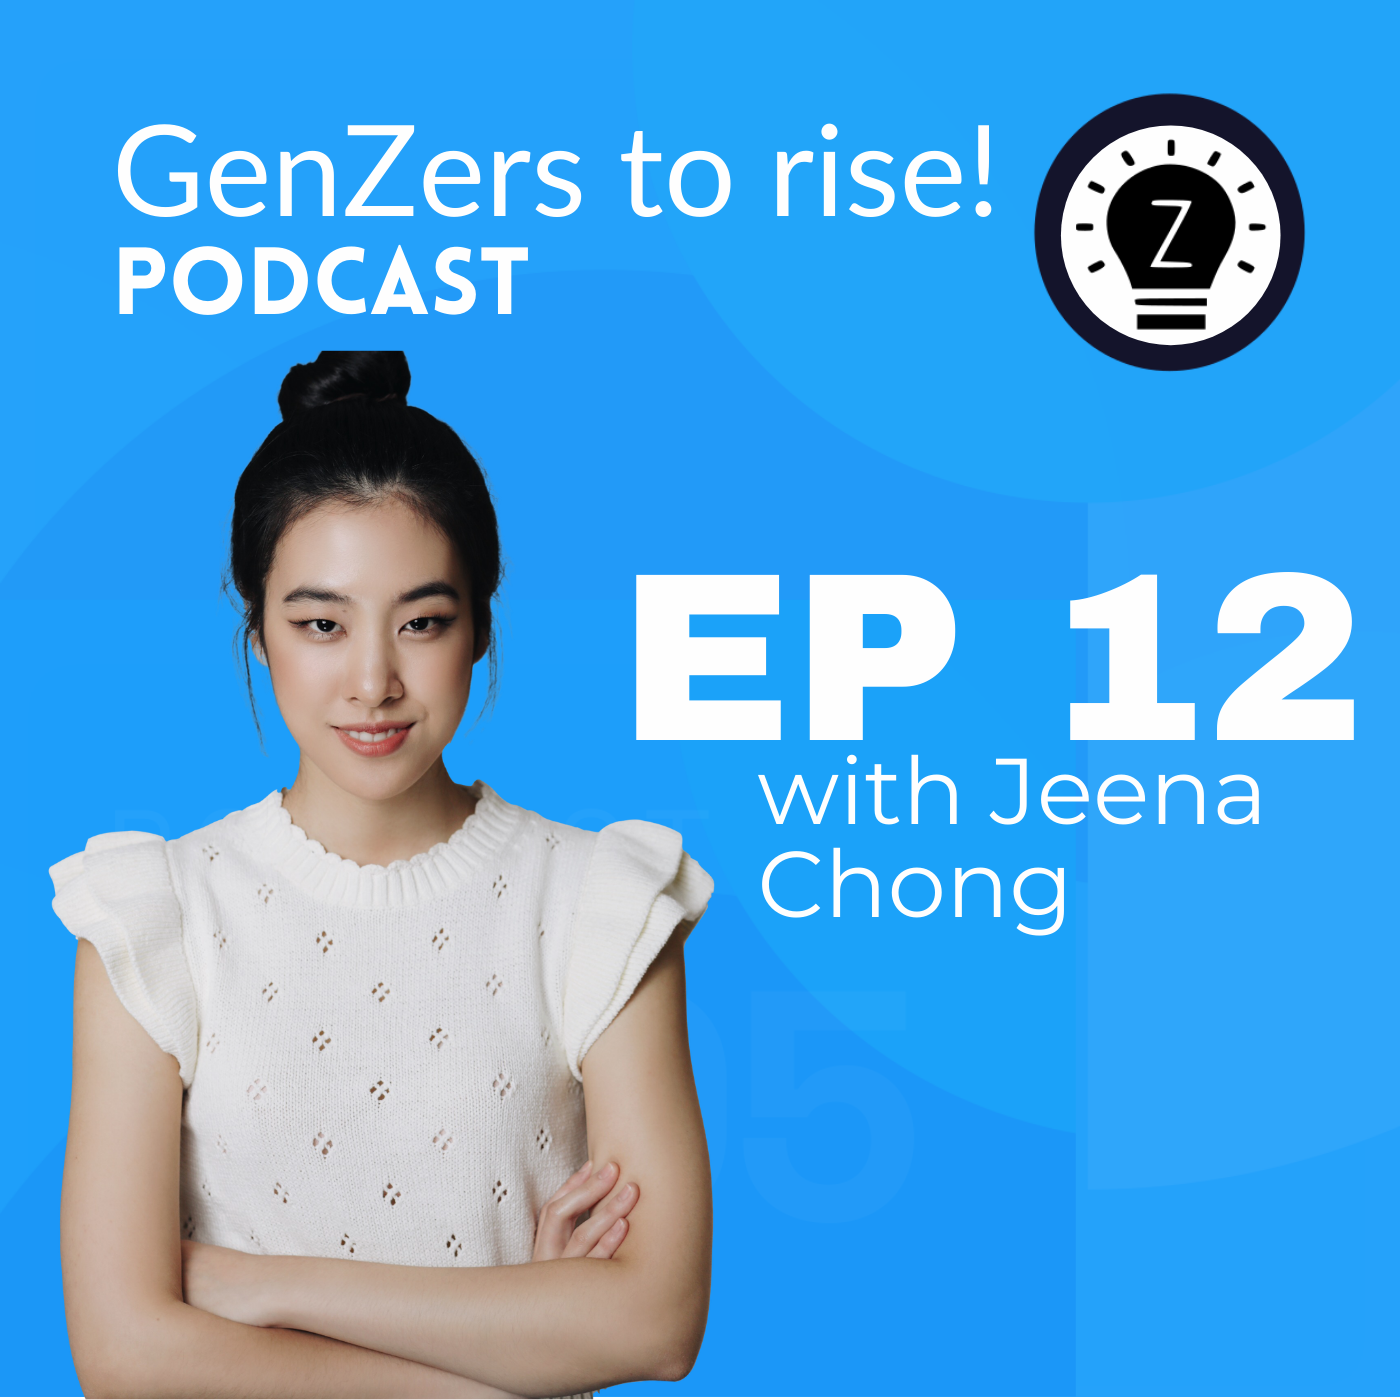 Ep 12: Building a clean vegan skincare brand while in college with Jeena Chong - GenZers to rise! Podcast